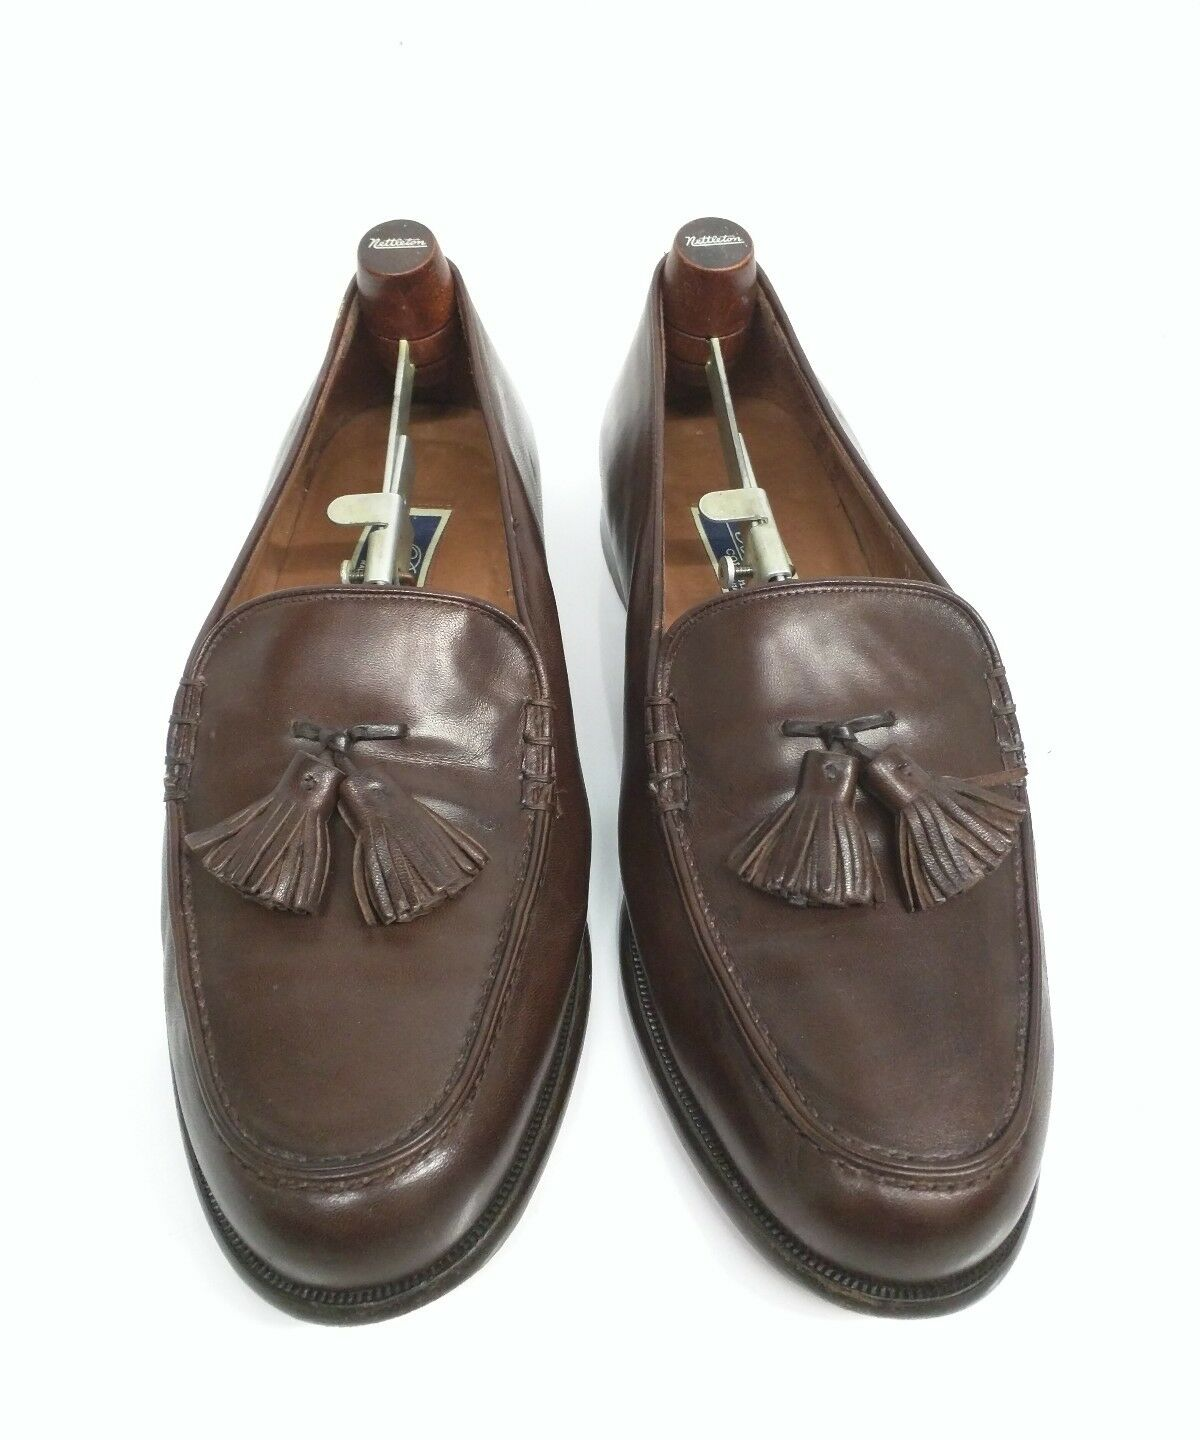 9ecc84ca3ef Bragano Cole Haan Mens Penny Loafers 11 M Brown Lamb Leather Made in shoes